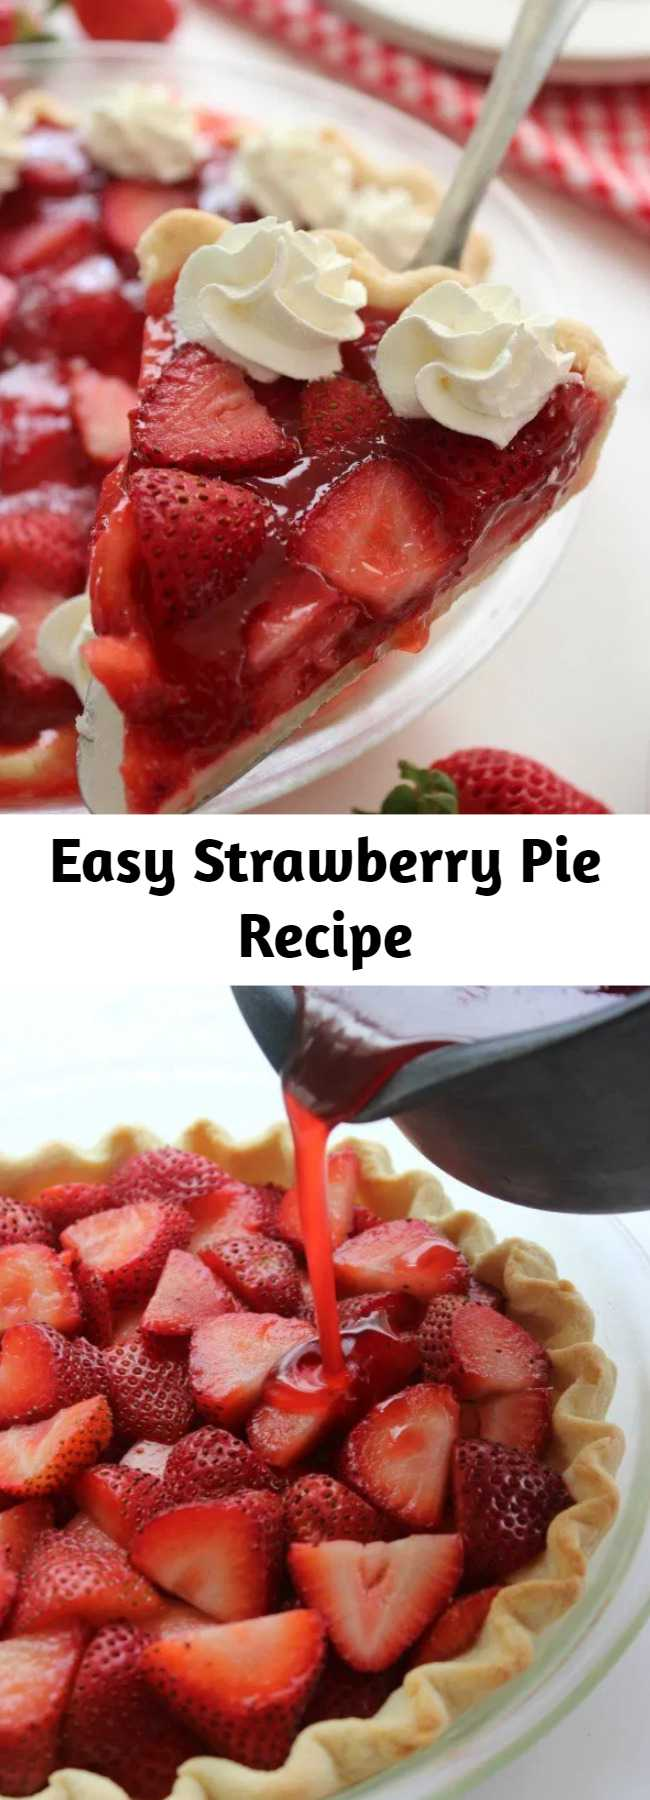 Easy Strawberry Pie Recipe - This super simple Strawberry Pie Recipe is loaded with strawberries and a homemade jelly filling. You will find it to be like the same you find at Frisch's or Shoney's. Oh so YUMMY! Since this pie starts with a store bought crust, you can whip it up in no time at all.